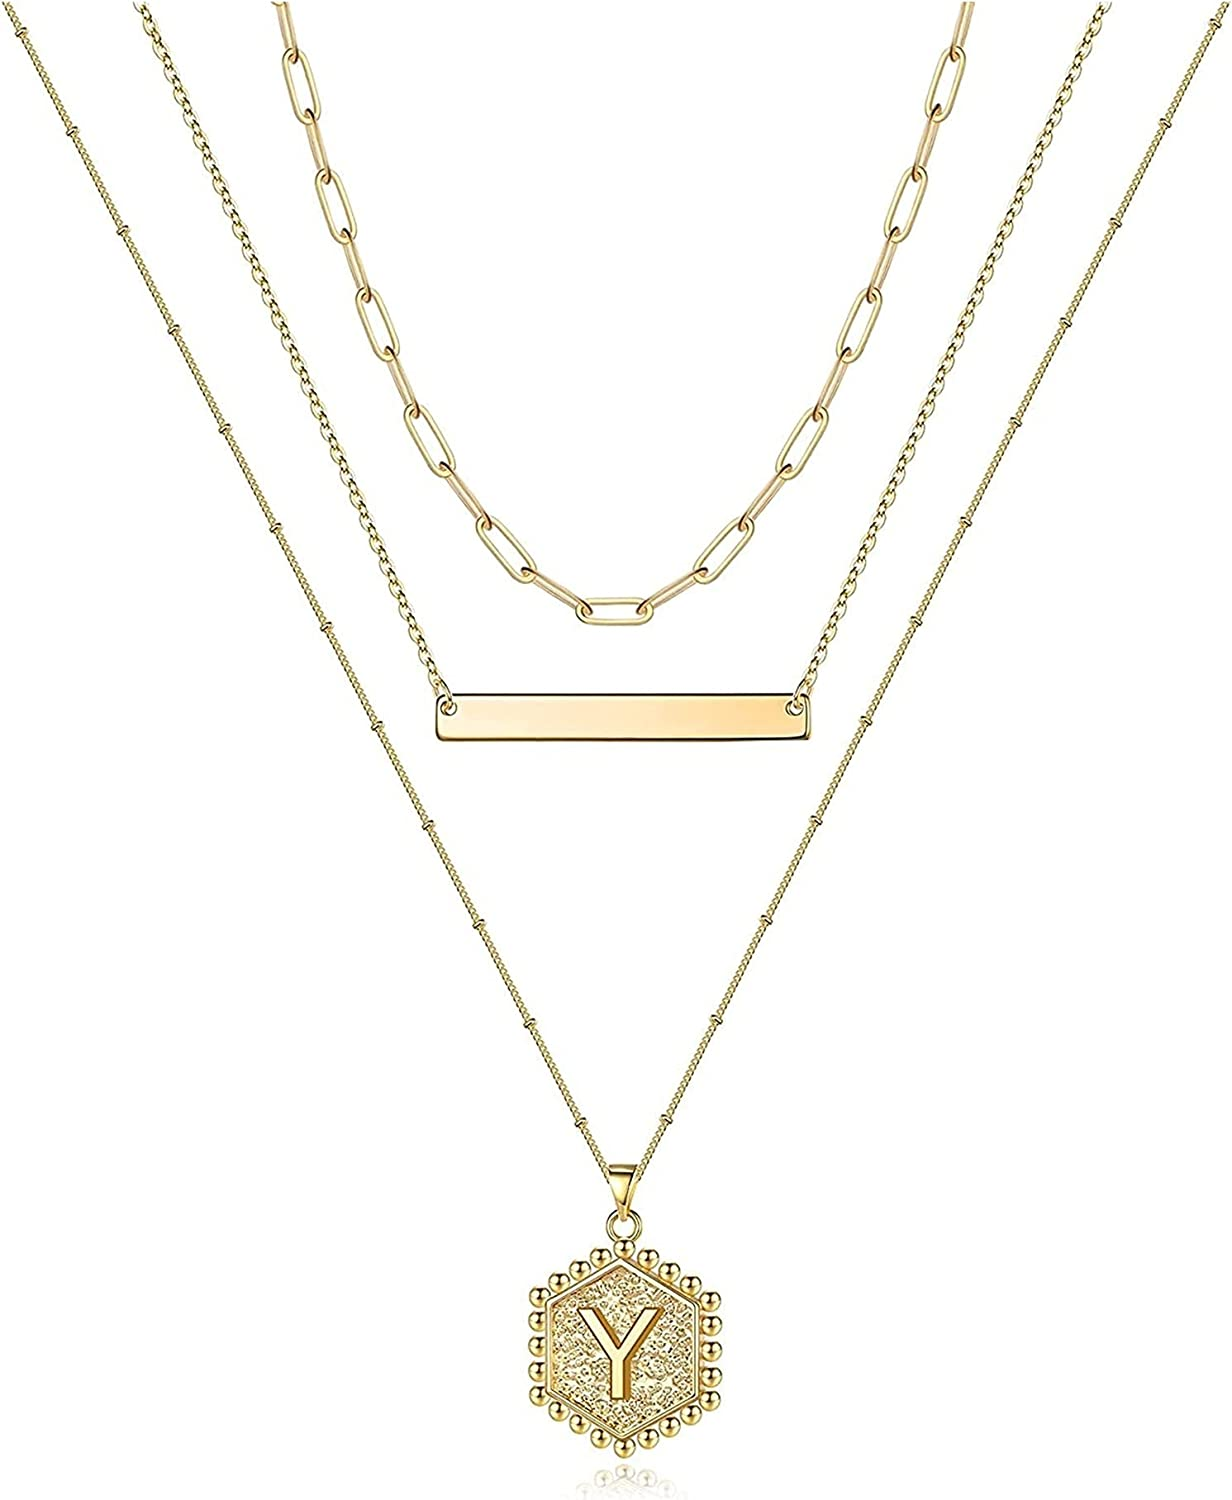 Jsmhh Gold LayeredNecklaces for Women 14K Gold Plated Bar Necklace Handmade Layering Hexagon Letter Pendant Beads Chain Necklace Layered Necklaces for Women Gold Jewelry Gifts (Color : Y)